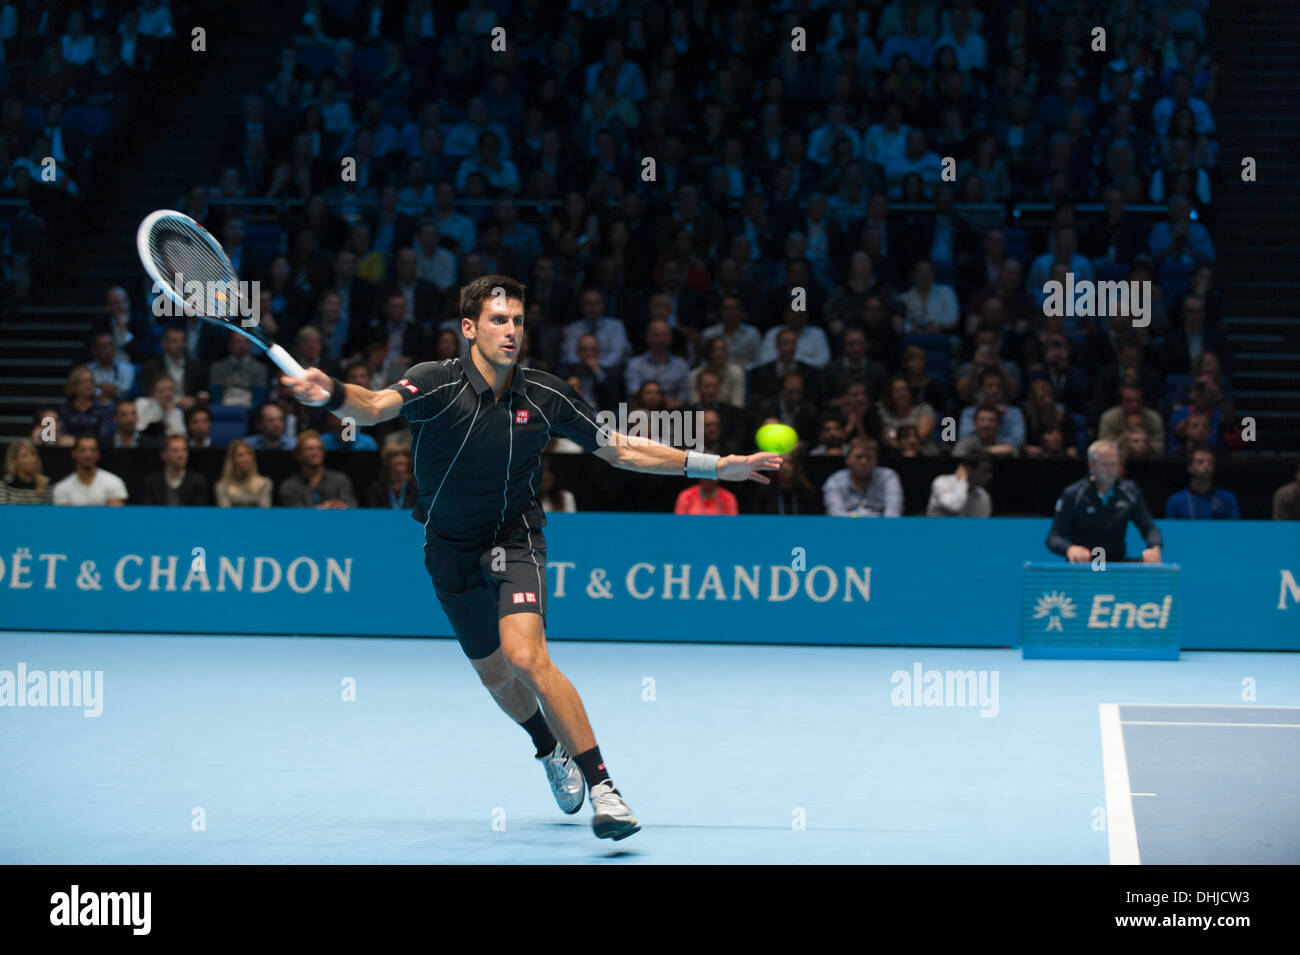 The O2, London, UK. 11th Nov, 2013. Novak Djokovic in action at the ATP World Tour Finals, winning the title and beating world number 1 Rafael Nadal © Malcolm Park editorial/Alamy Live News - Stock Image